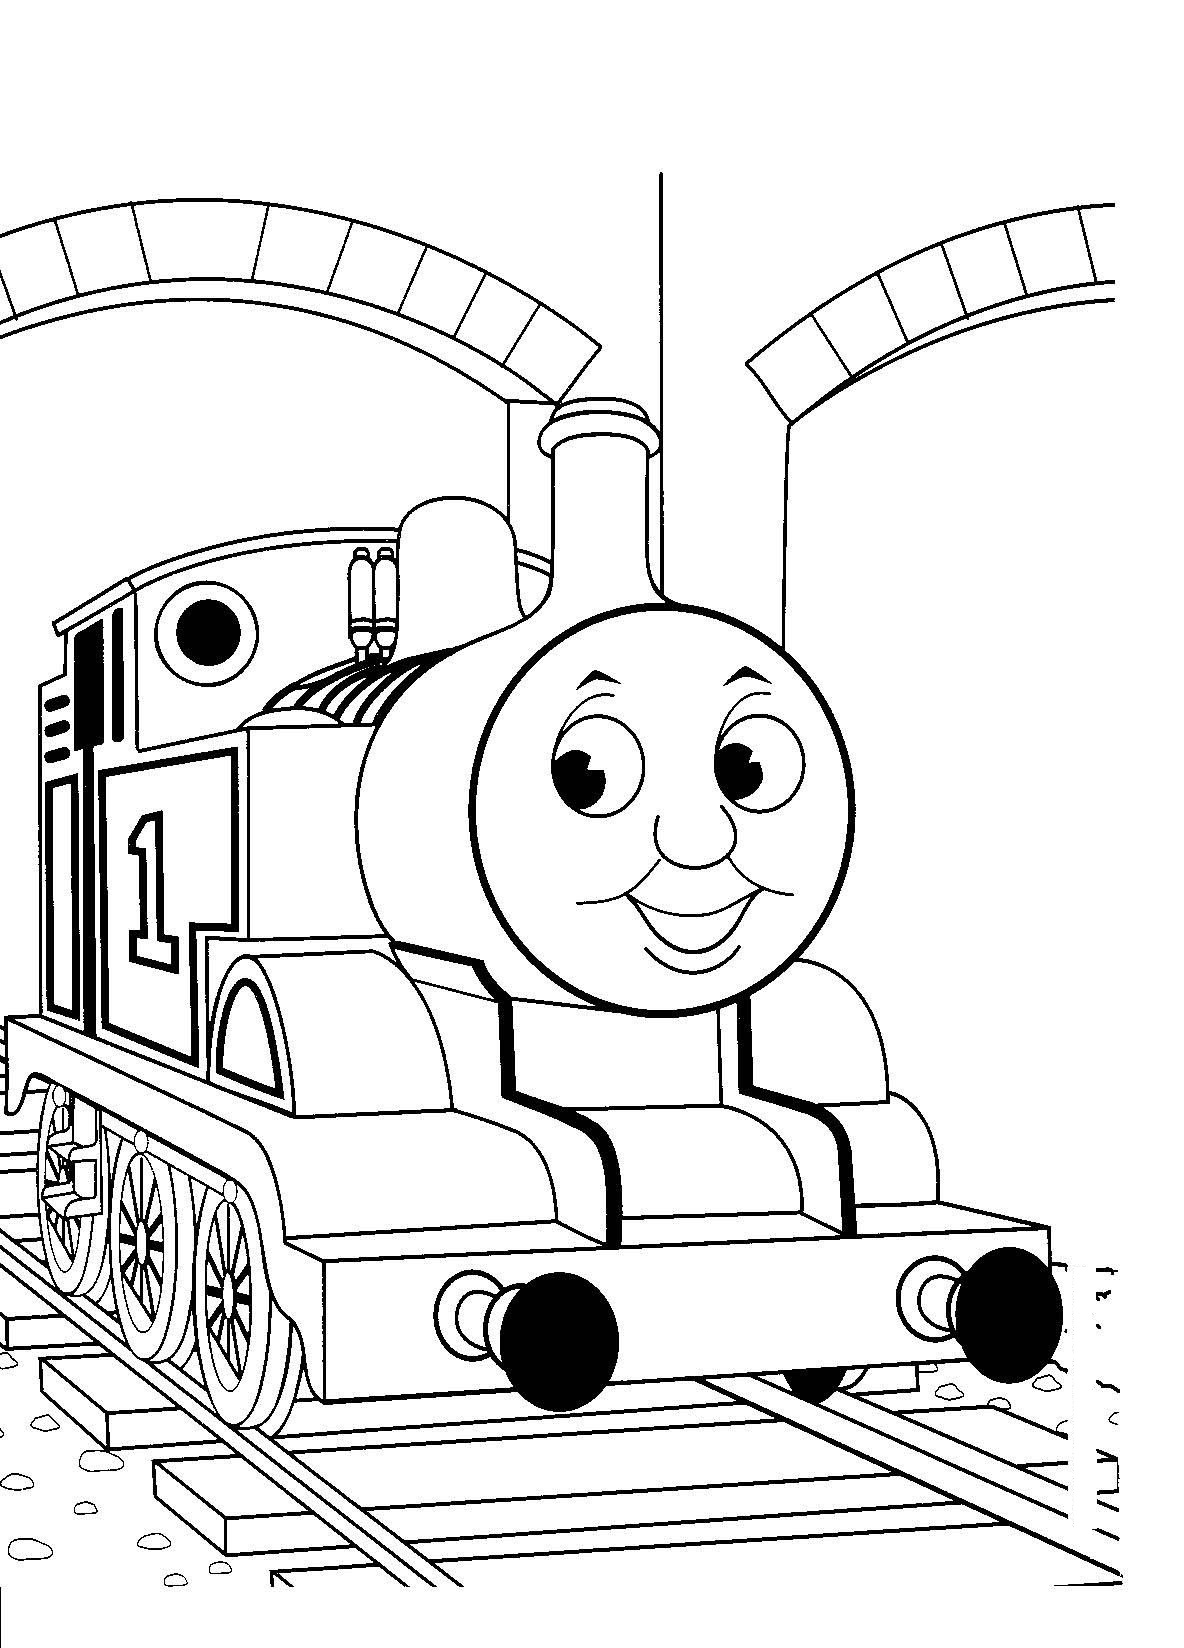 Free coloring pages - Free Printable Thomas The Train Coloring Pages